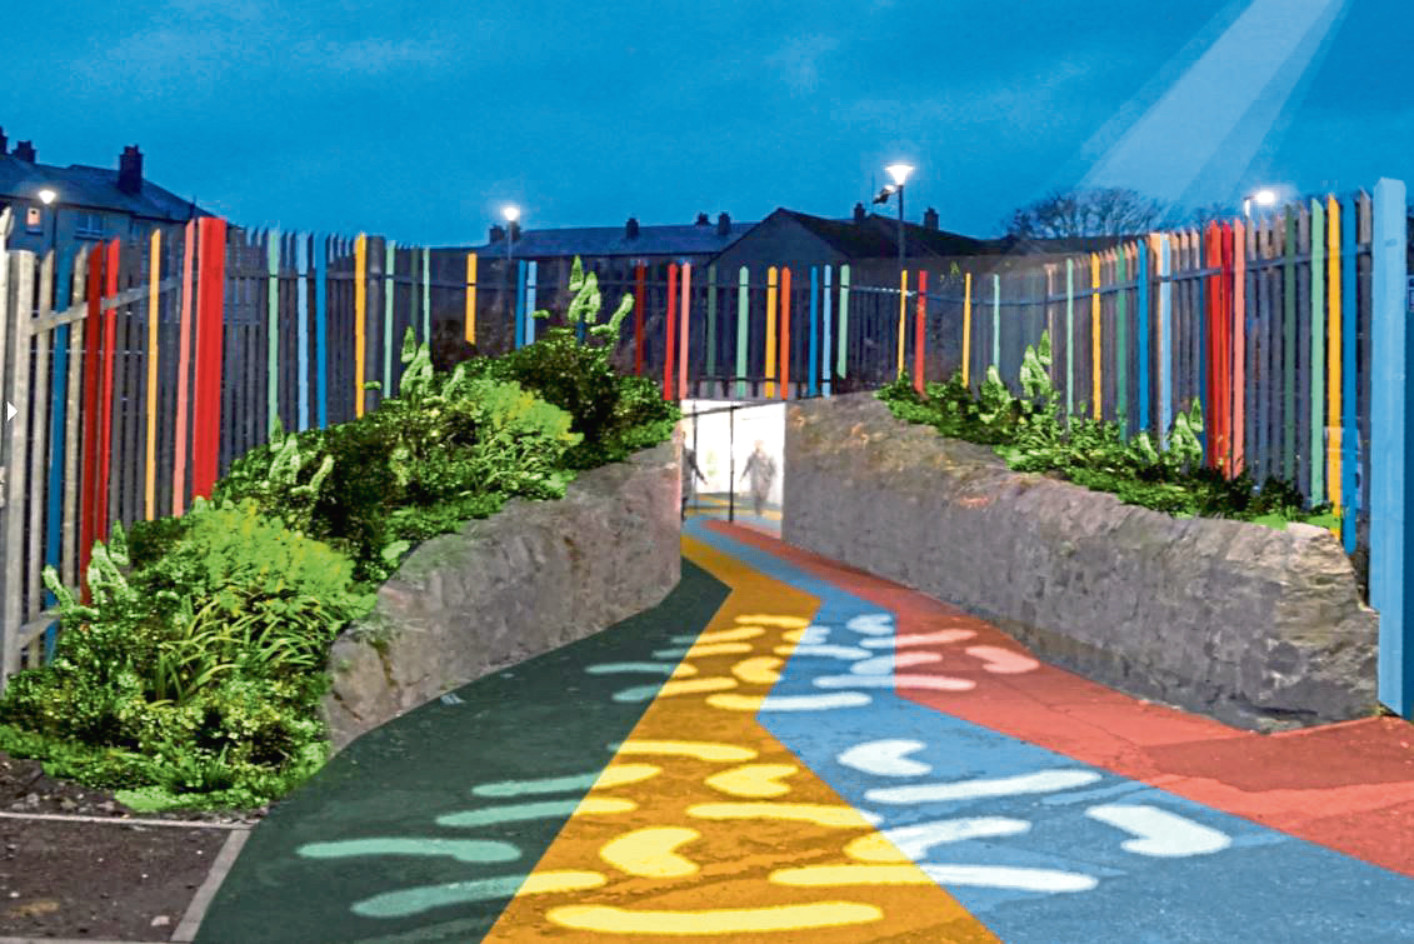 How the Hayton Road underpass could look